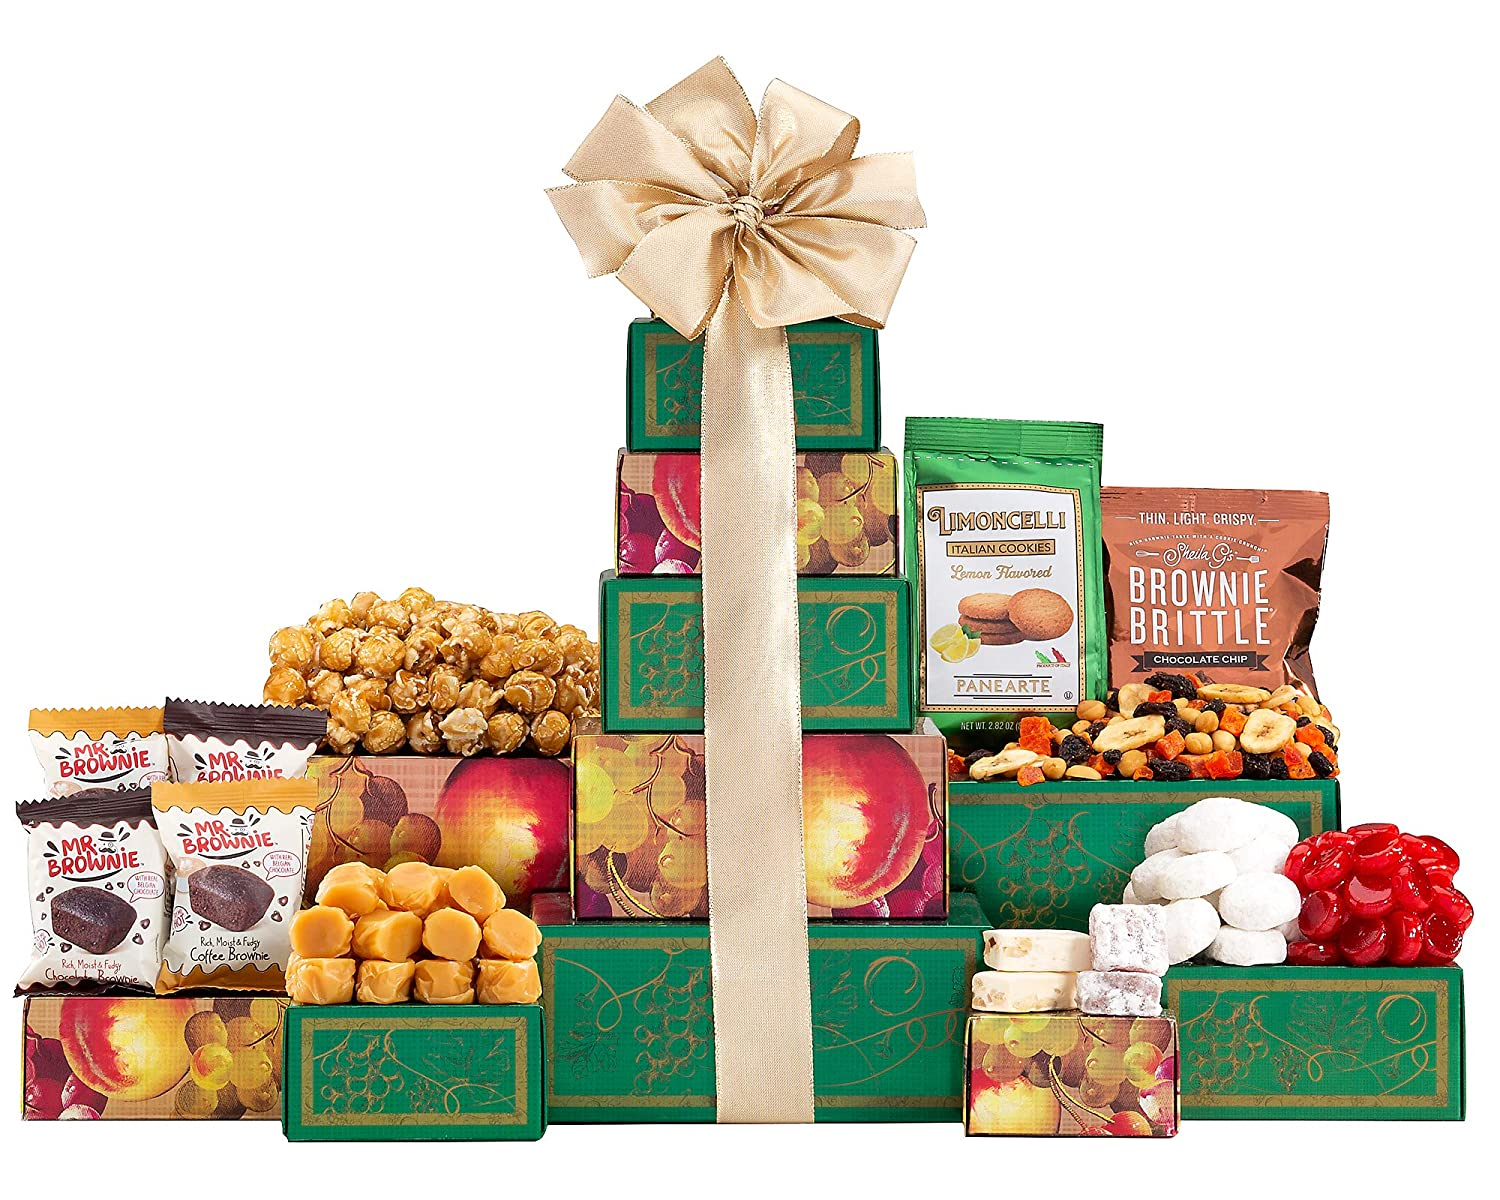 Sympathy Gift Tower For Times Of Support A Way to Say Sorry For Your Loss and Sweeten The Day Chocolate Cookies Caramels by Wine Country Gift Baskets